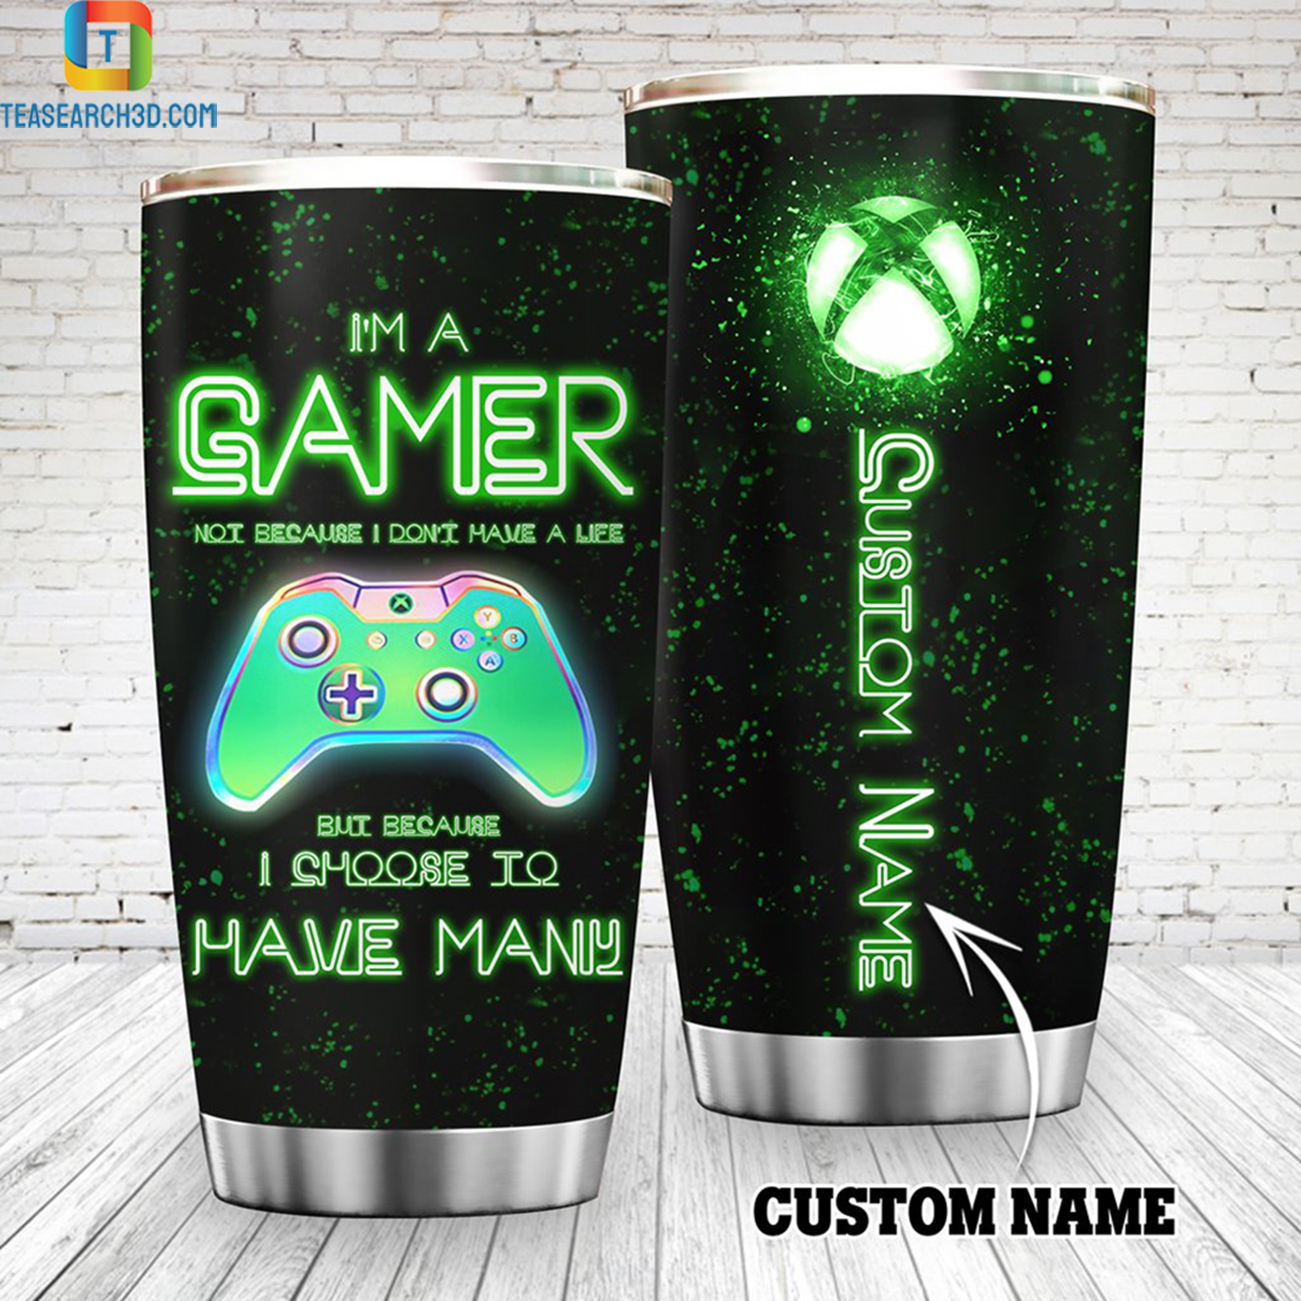 Personalized custom name Xbox I'm a gamer not because I don't have a life tumbler 2